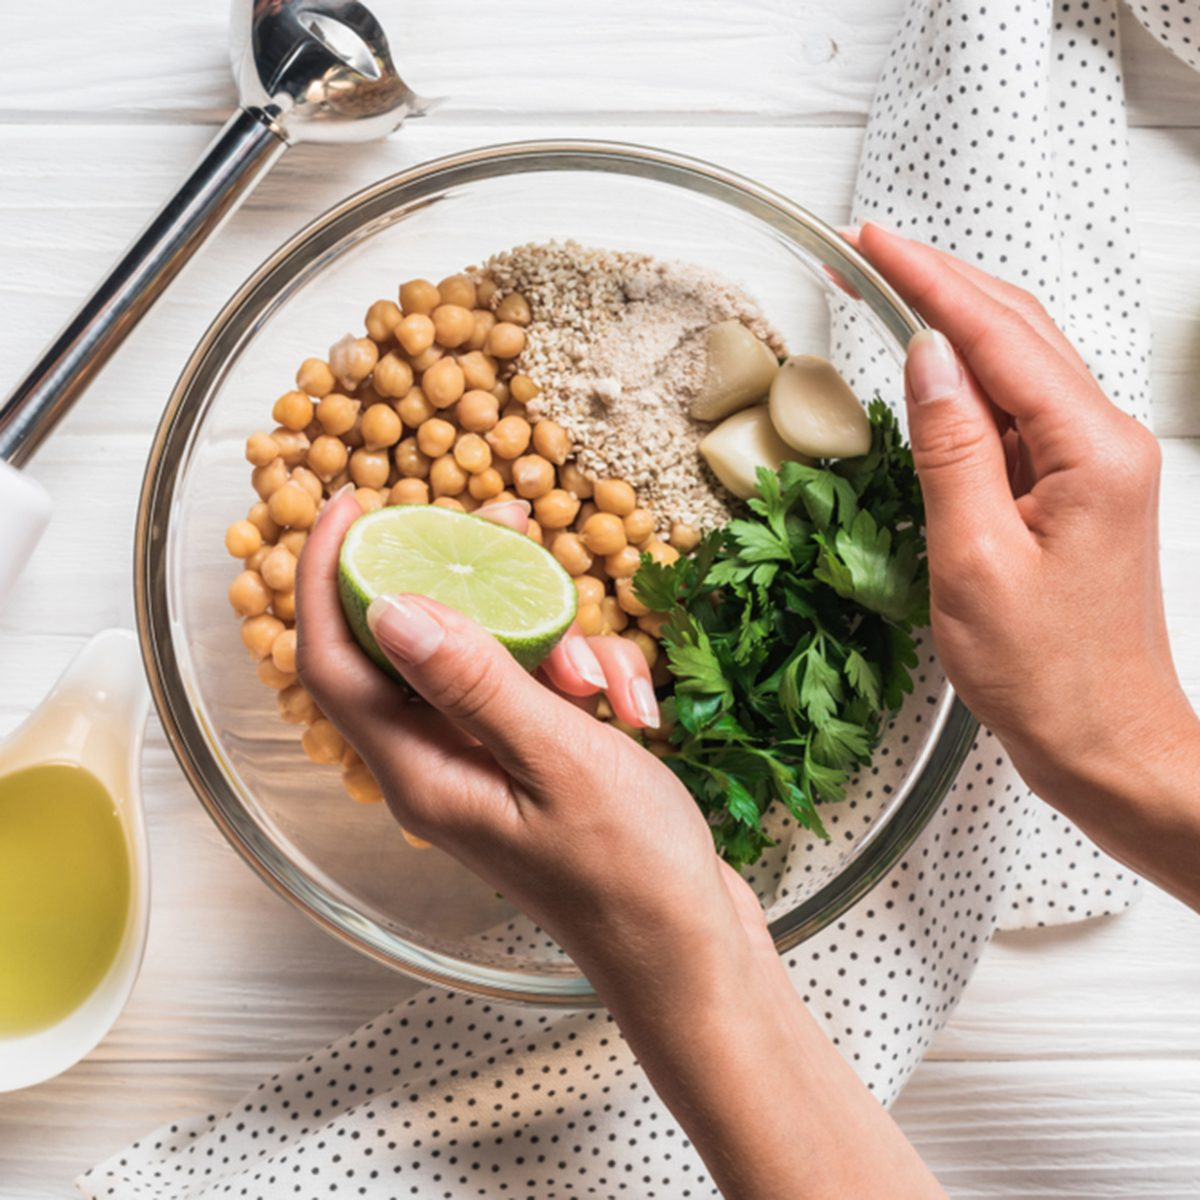 Cropped shot of woman, ingredients for hummus in bowl, olive oil and blender on wooden tabletop; Shutterstock ID 1161797650; Job (TFH, TOH, RD, BNB, CWM, CM): TOH